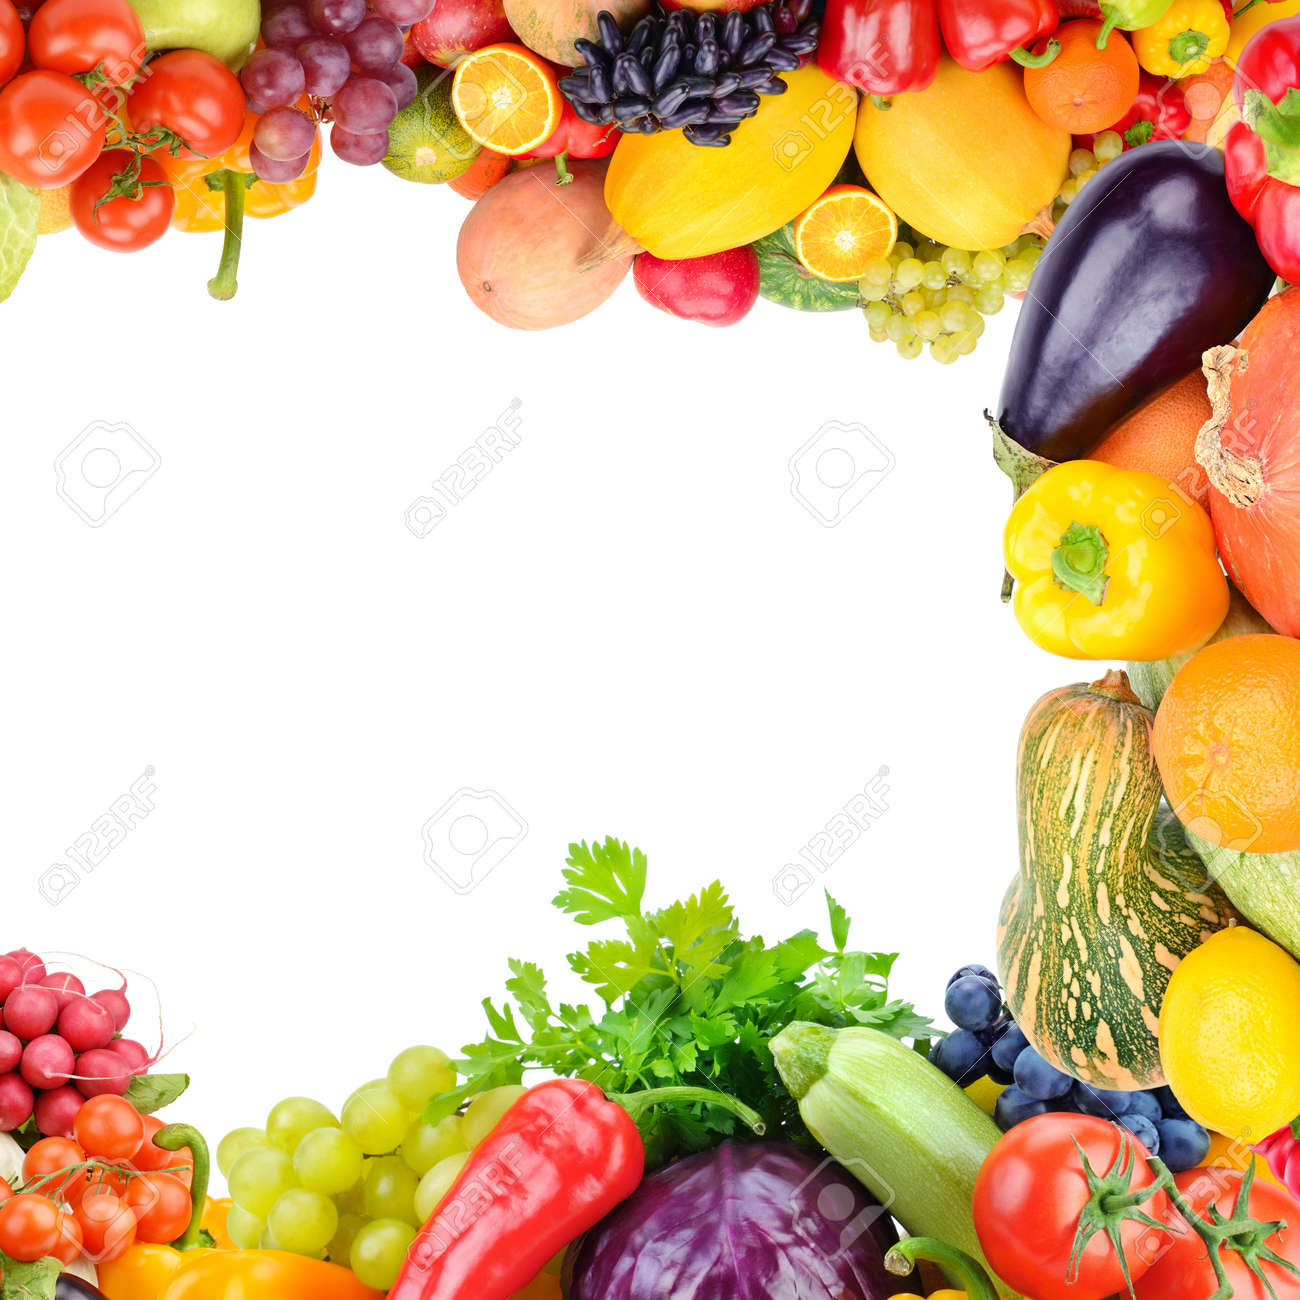 Frame of set vegetables and fruits on white background. Copy space. Top view. Free space for text. - 121640689